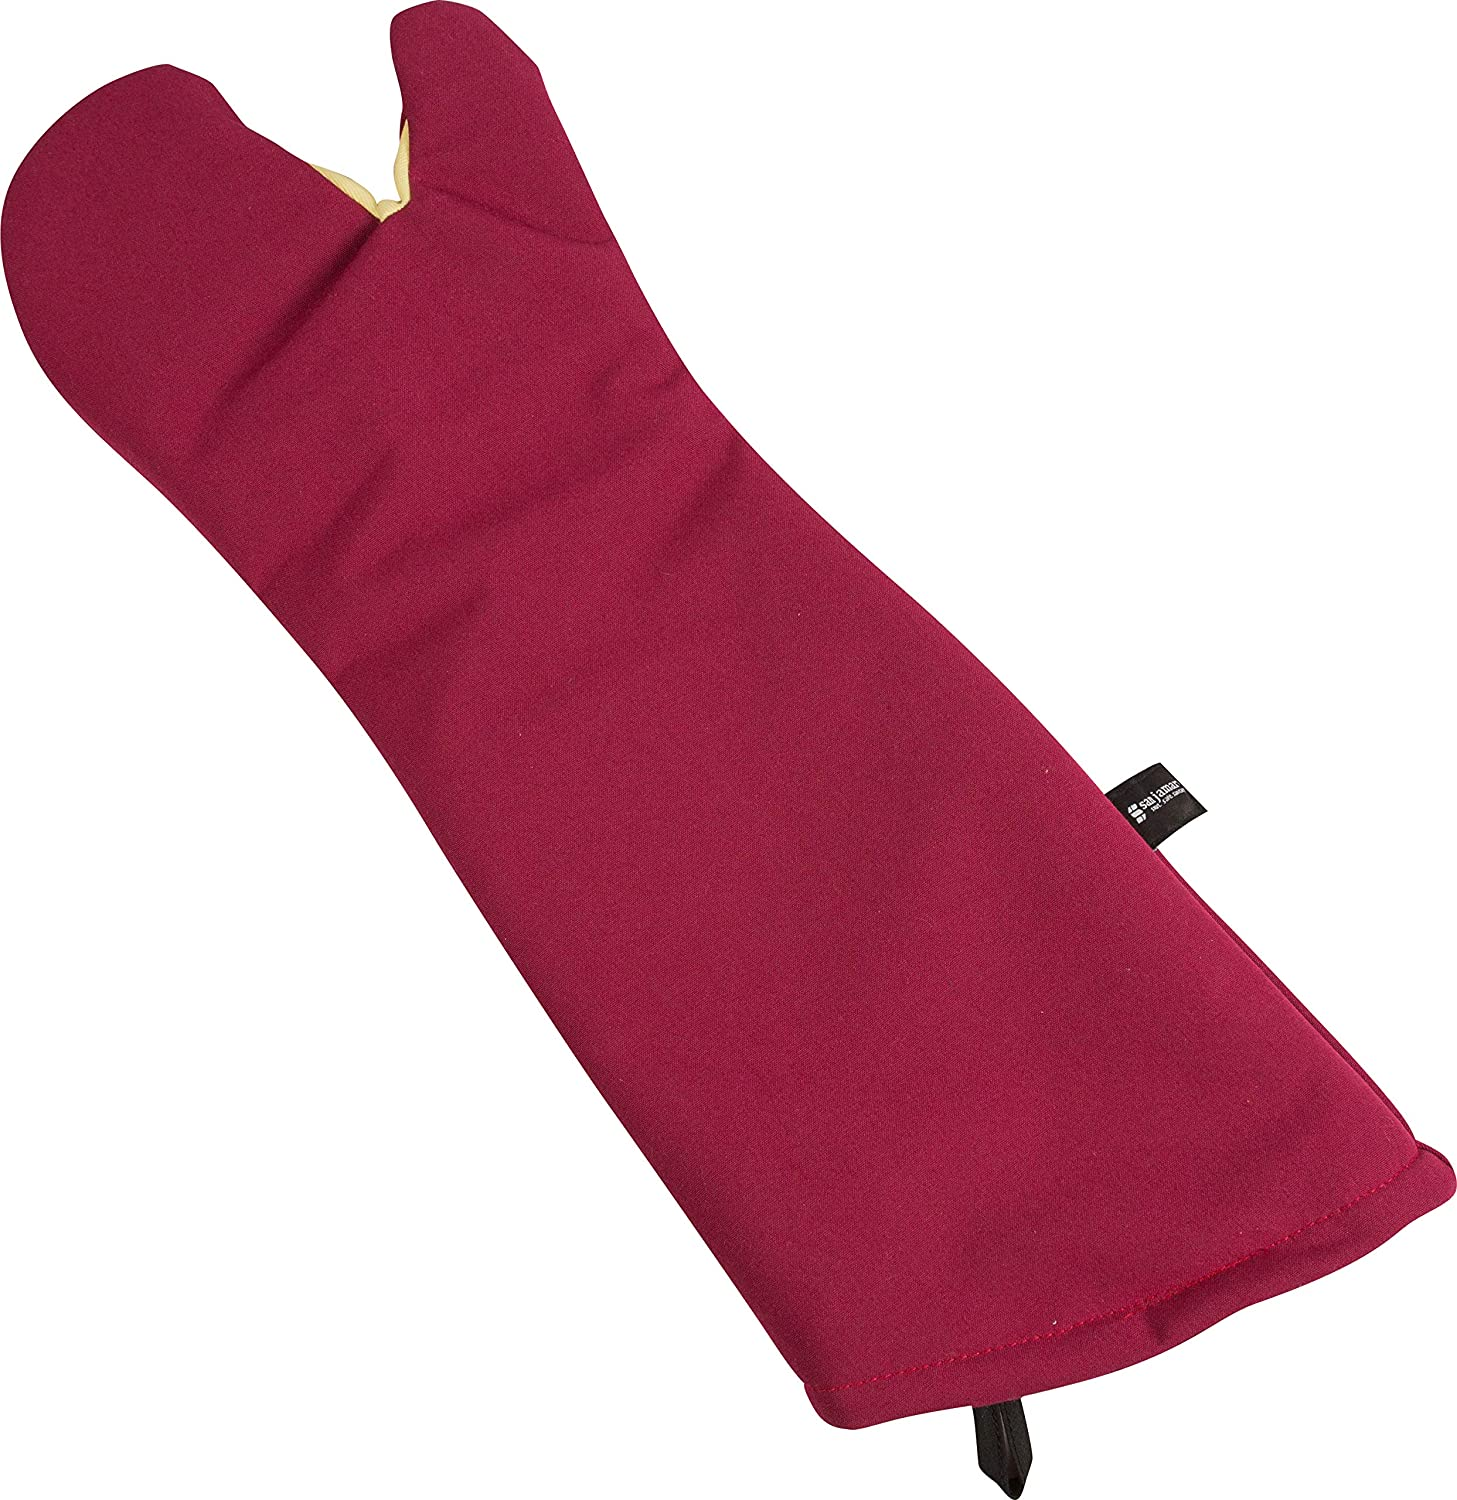 Red 24 Length San Jamar KT0224 Cool Touch Flame Conventional High Heat Intermittent Flame Protection up to 900/°F Oven Mitt 24 Length